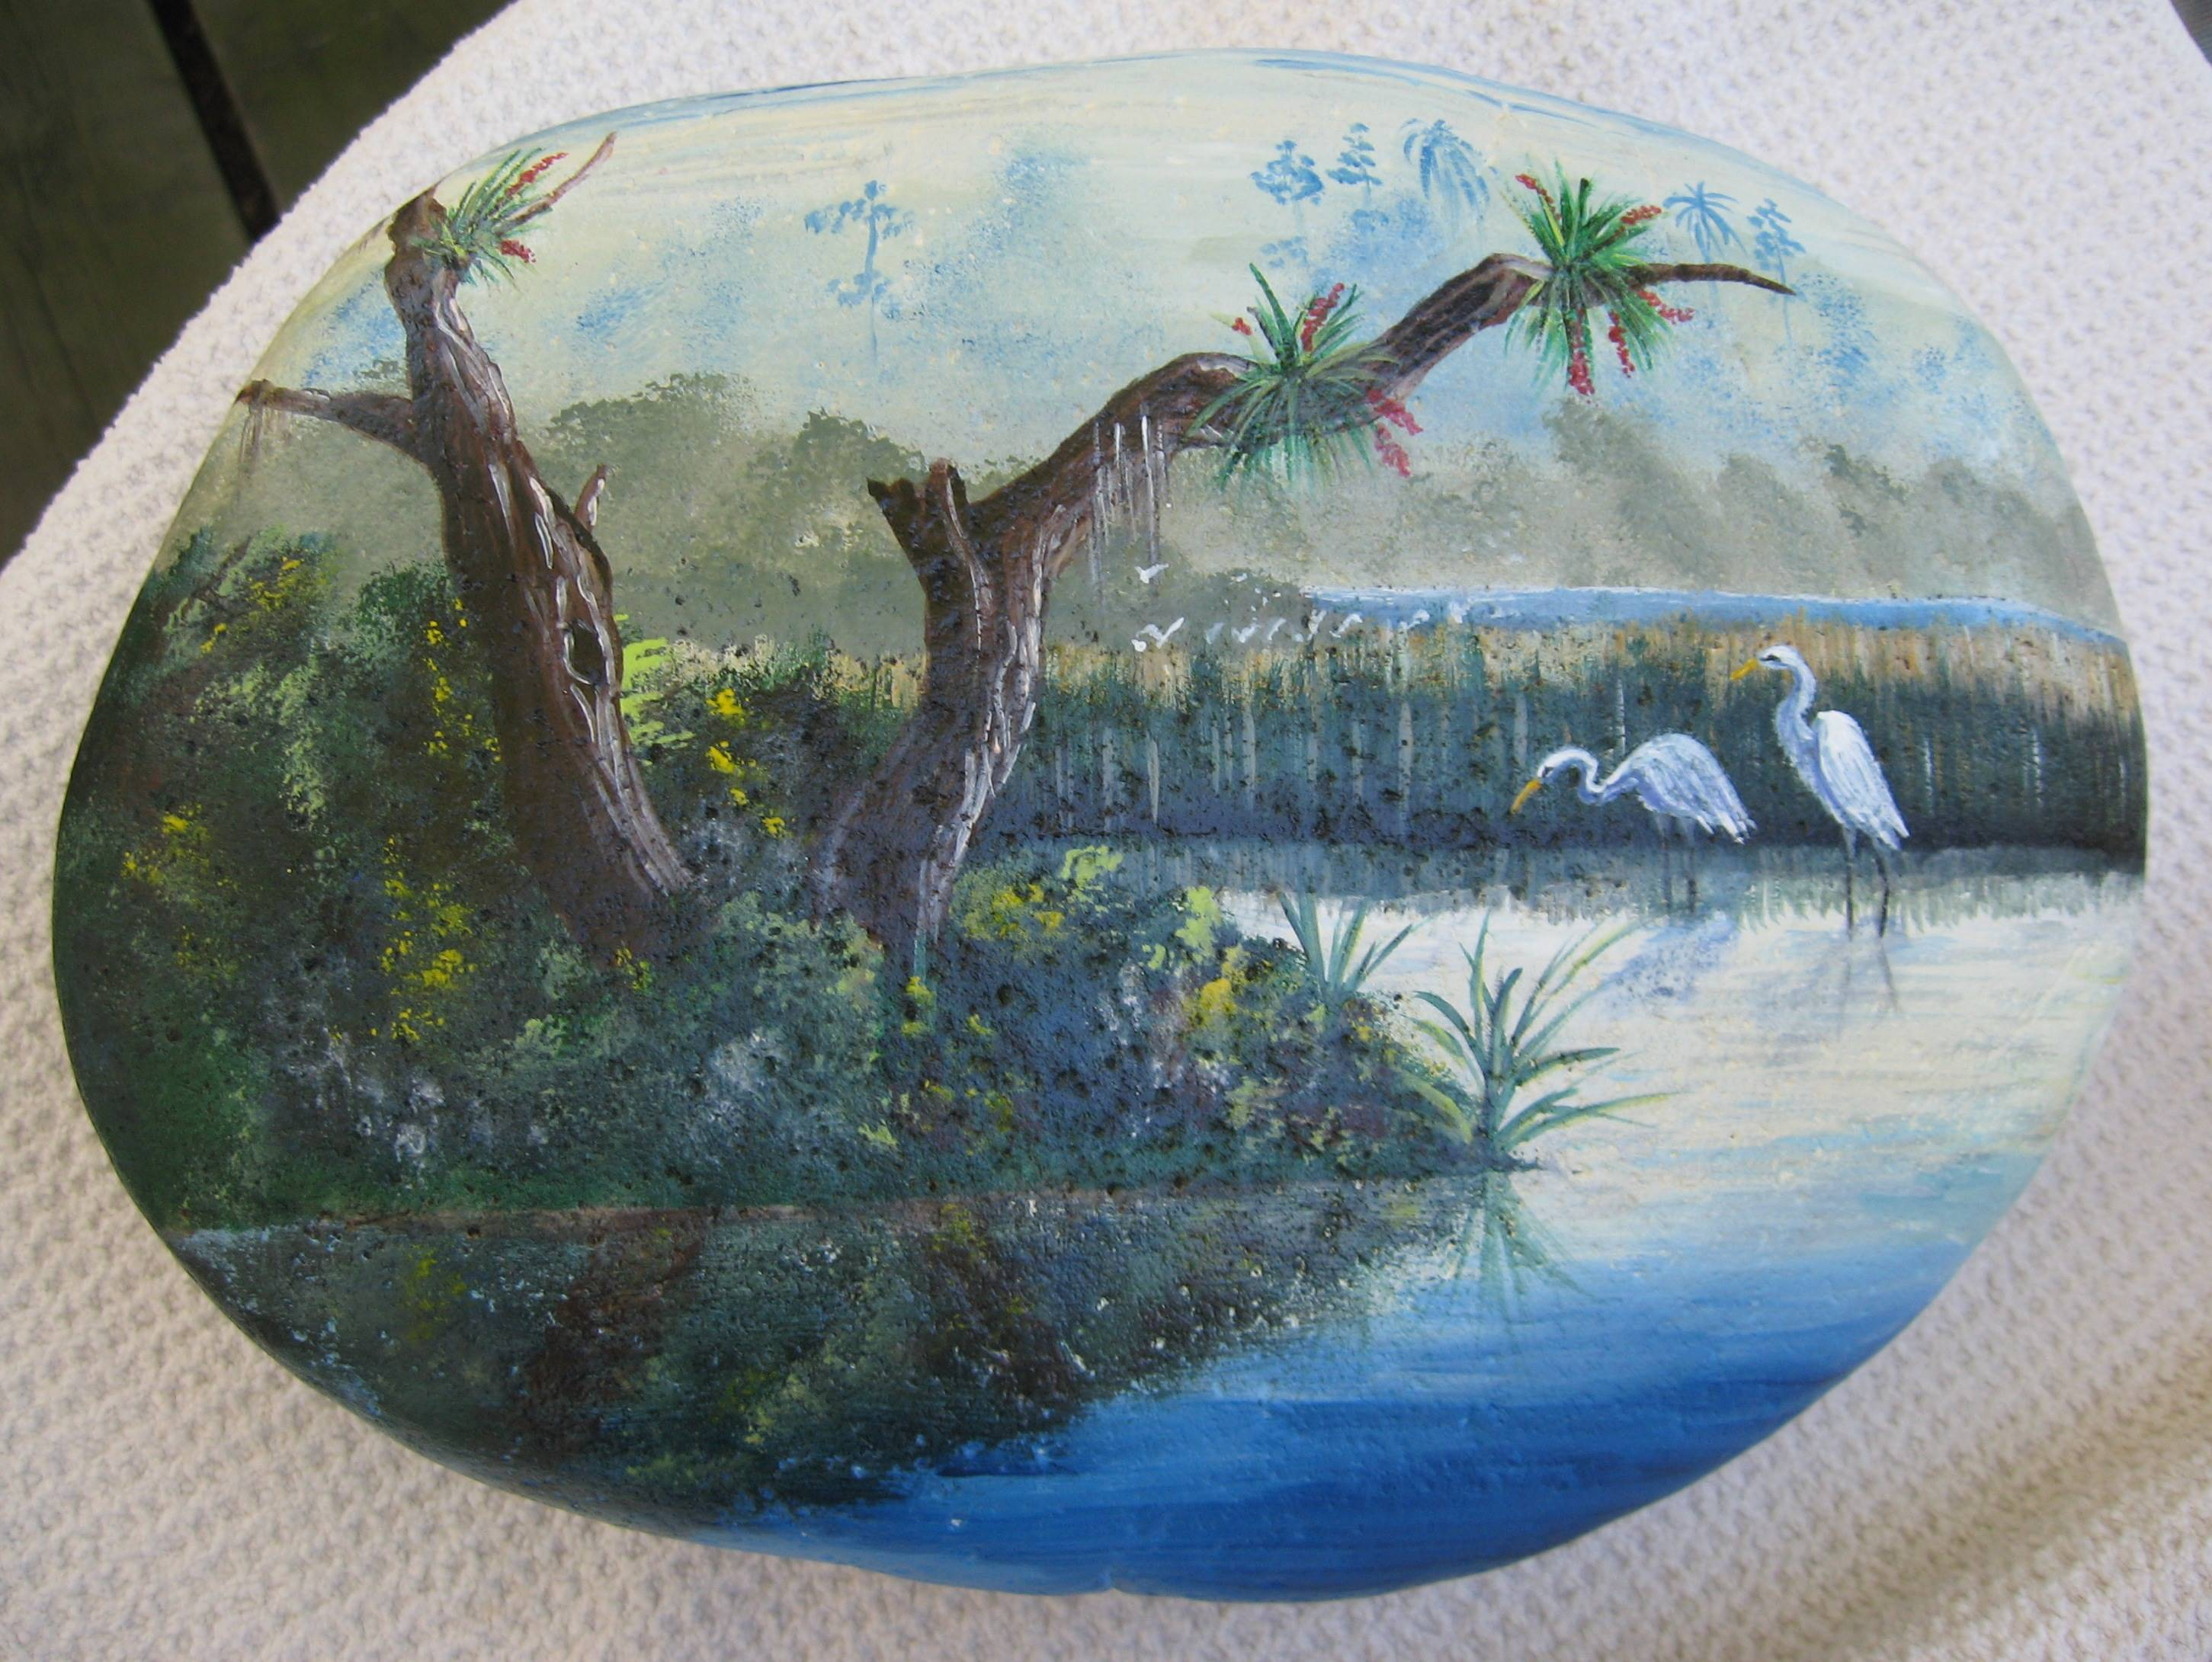 Hand painted rocks words and peace - Painting rocks for garden what kind of paint ...